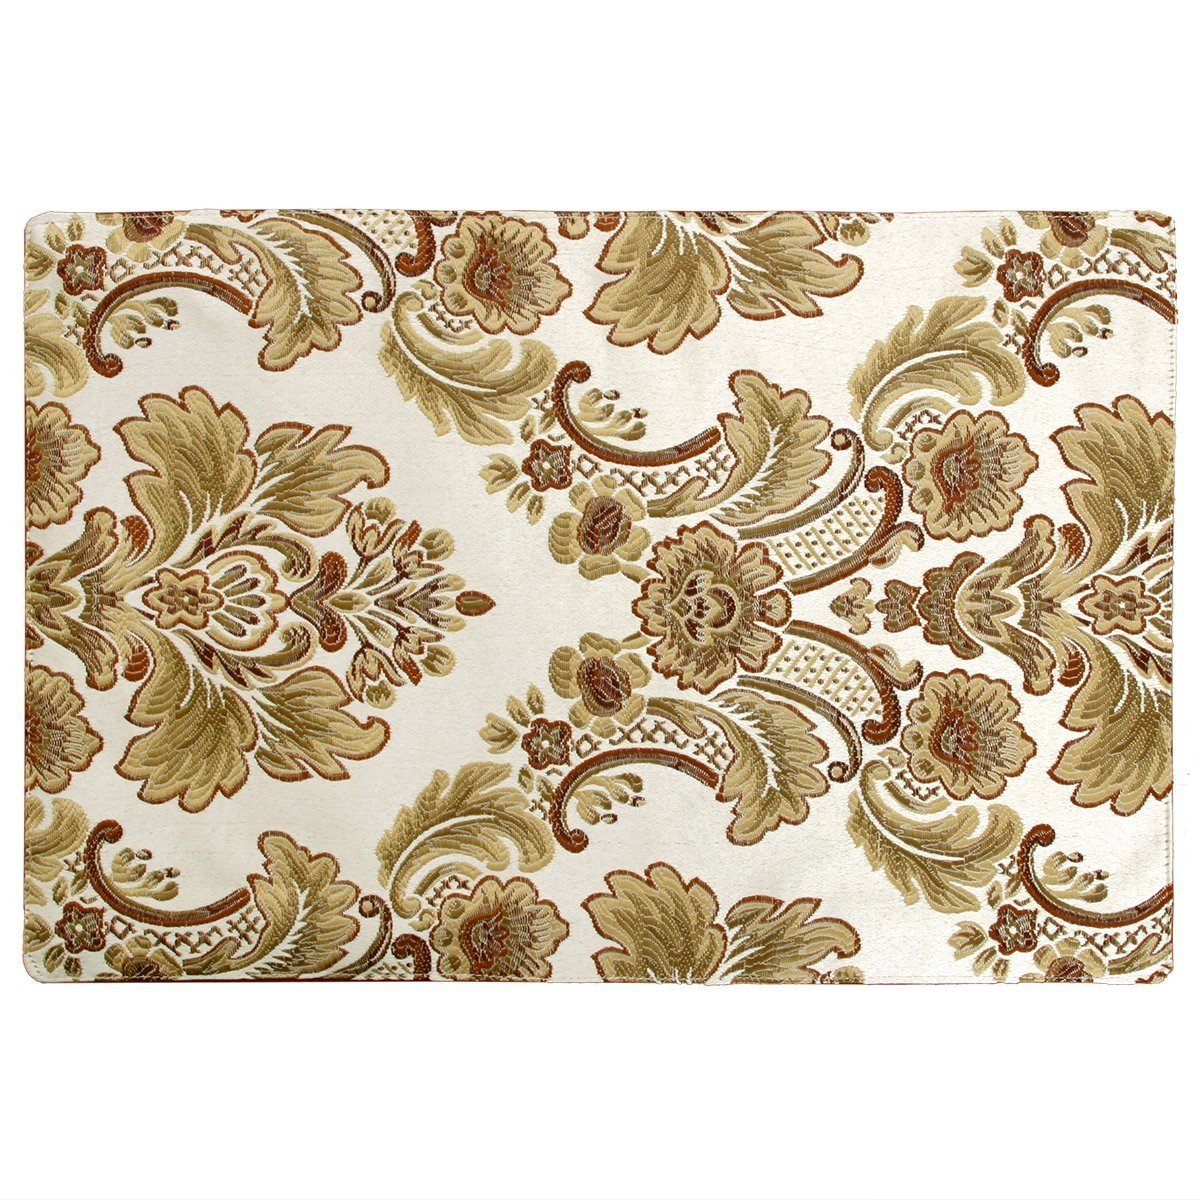 Luxury Damask Table Placemats Set of 6 Baishuo 12x18 inch